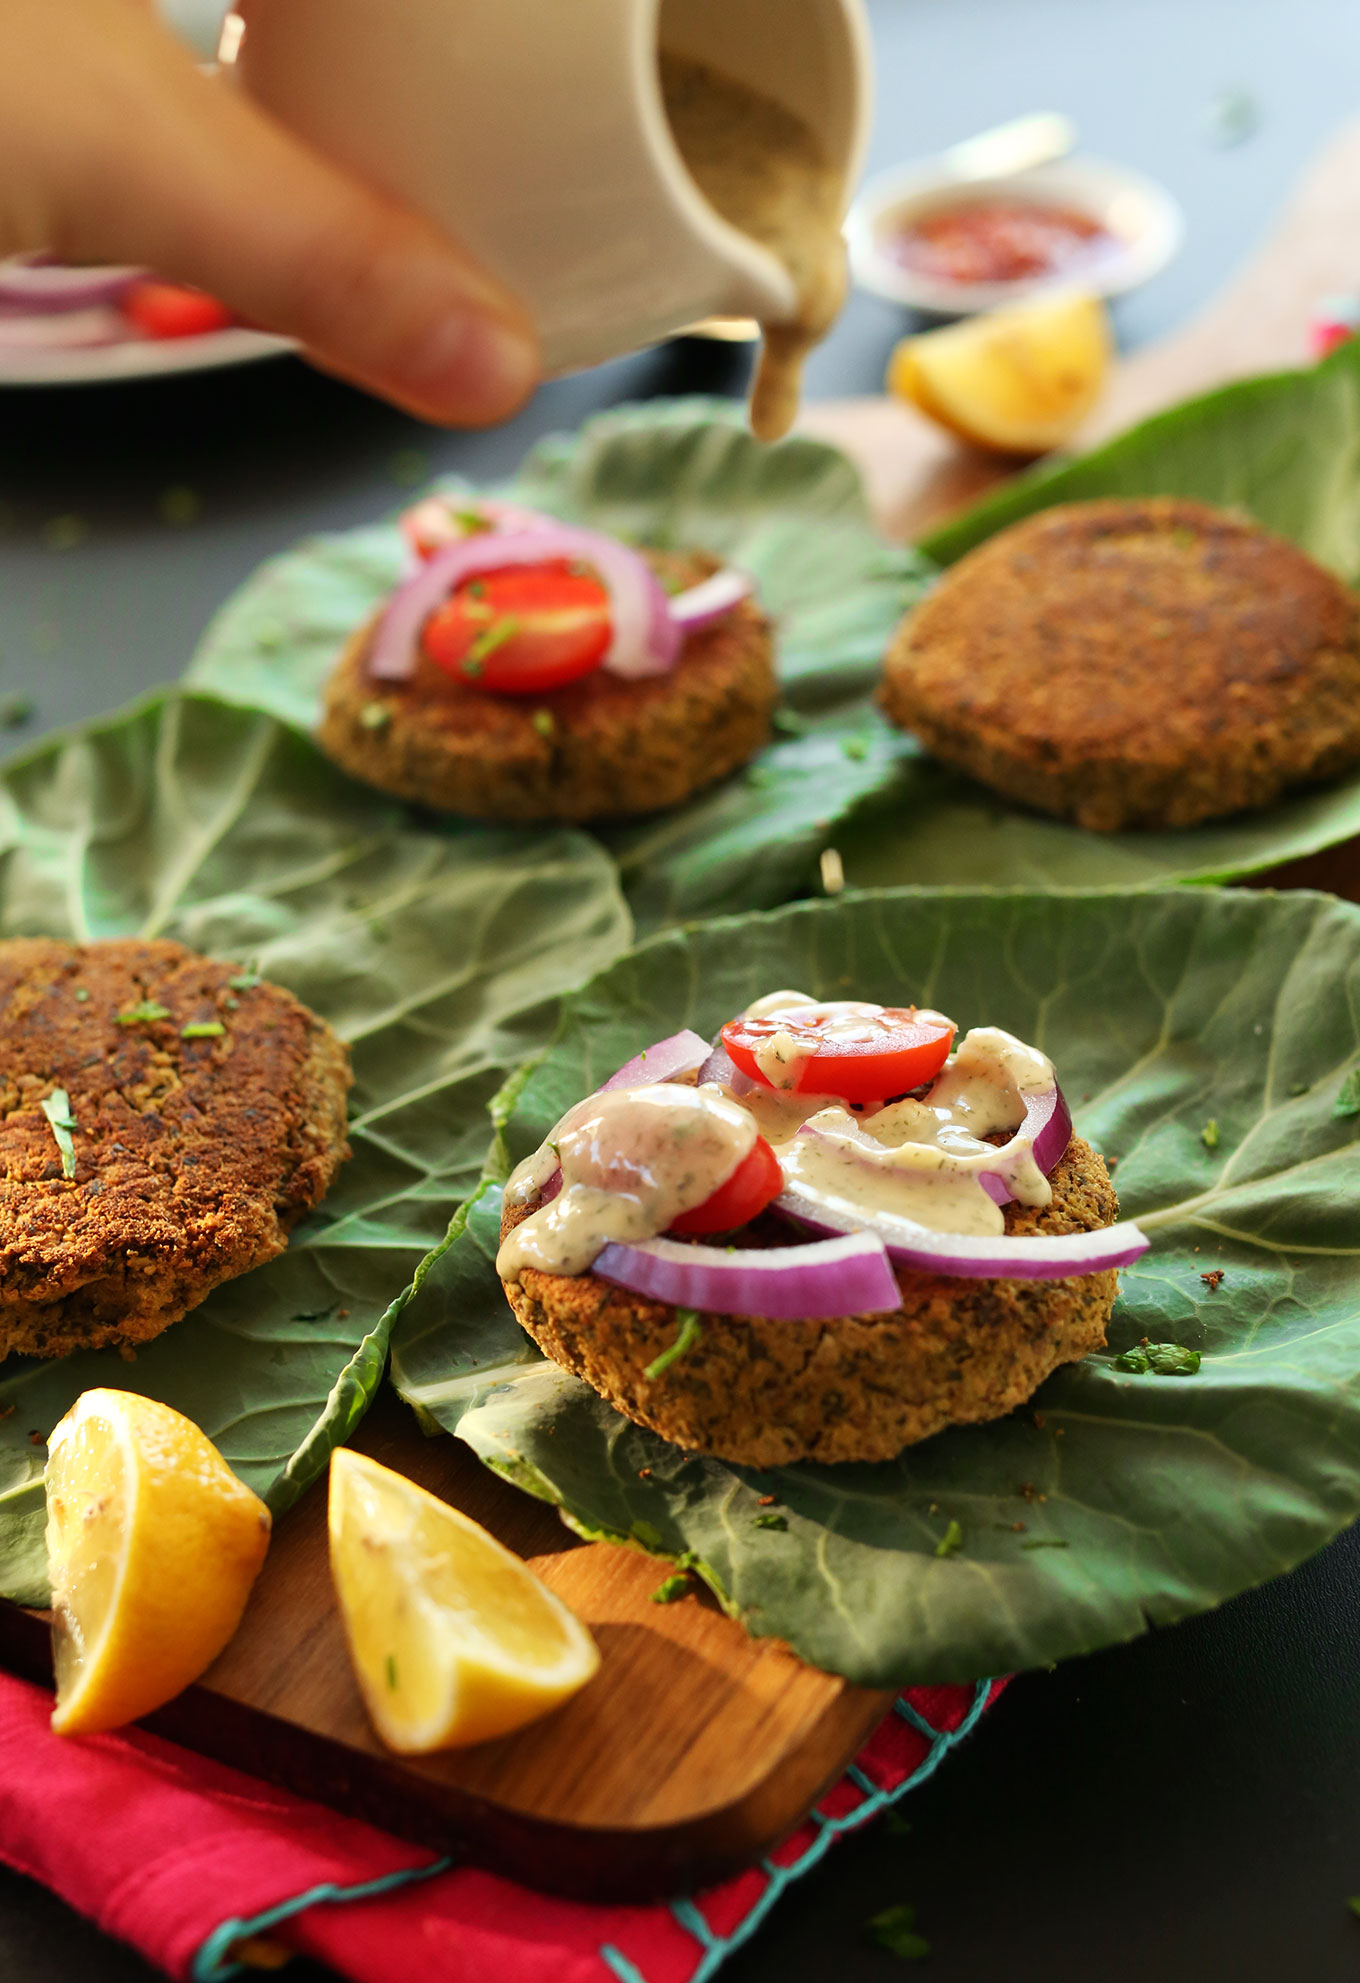 Pouring sauce over healthy baked falafel burgers